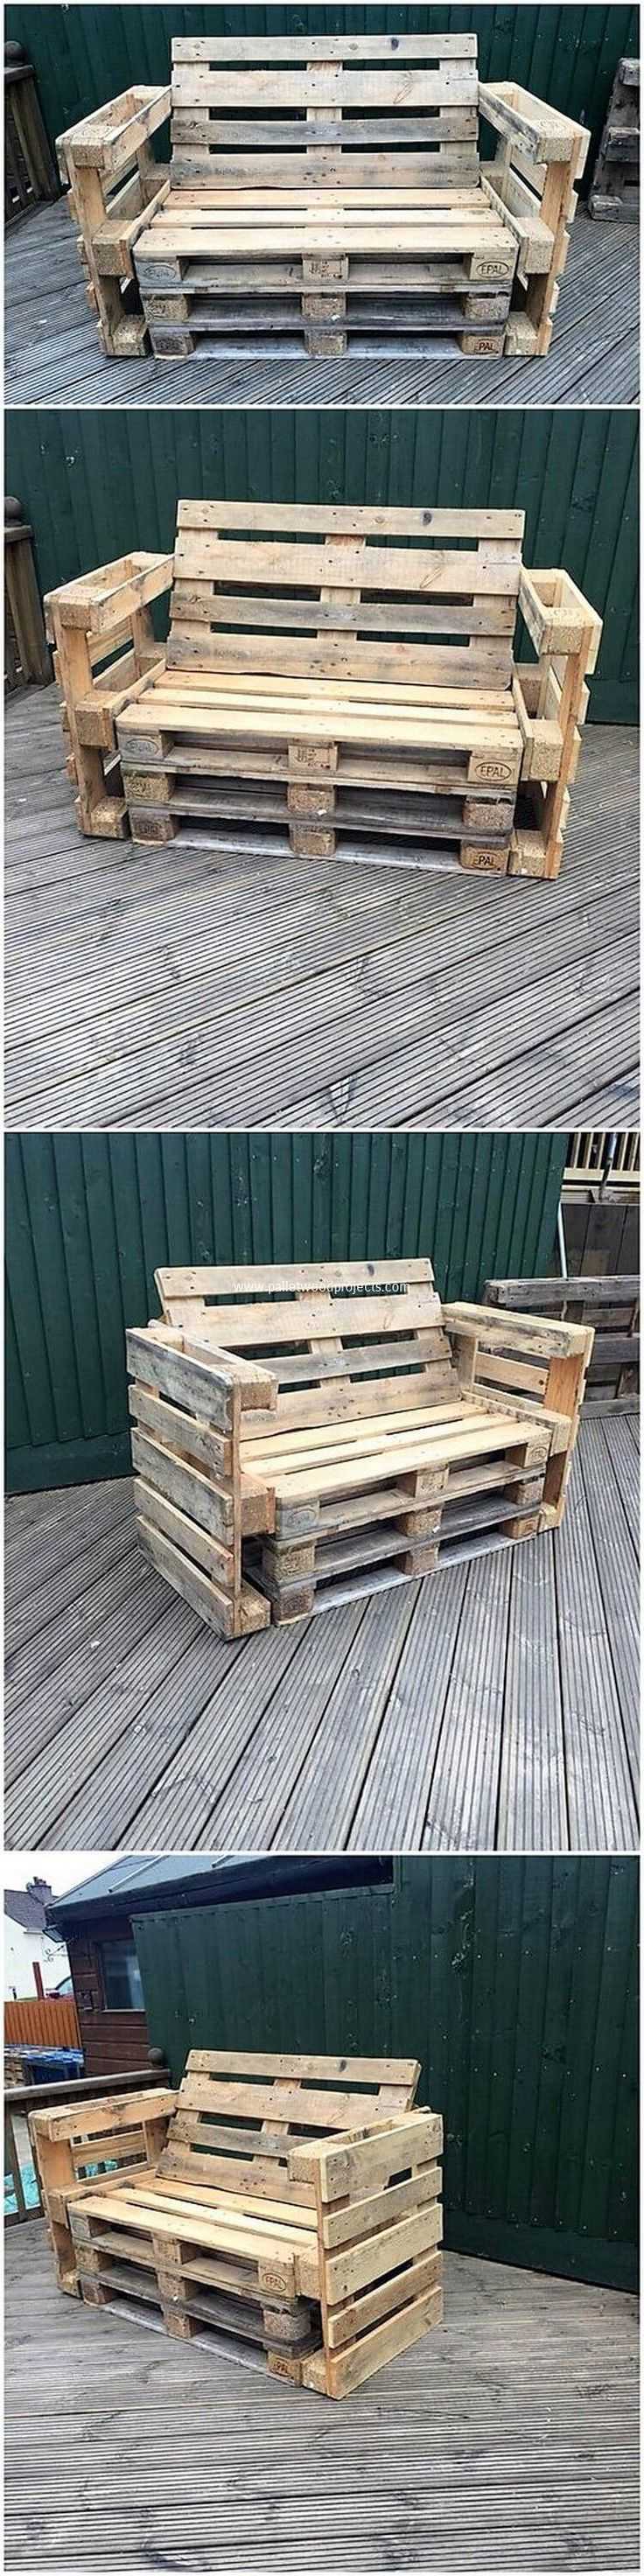 Epic Wood Pallet Ideas And Projects You Can Try Today